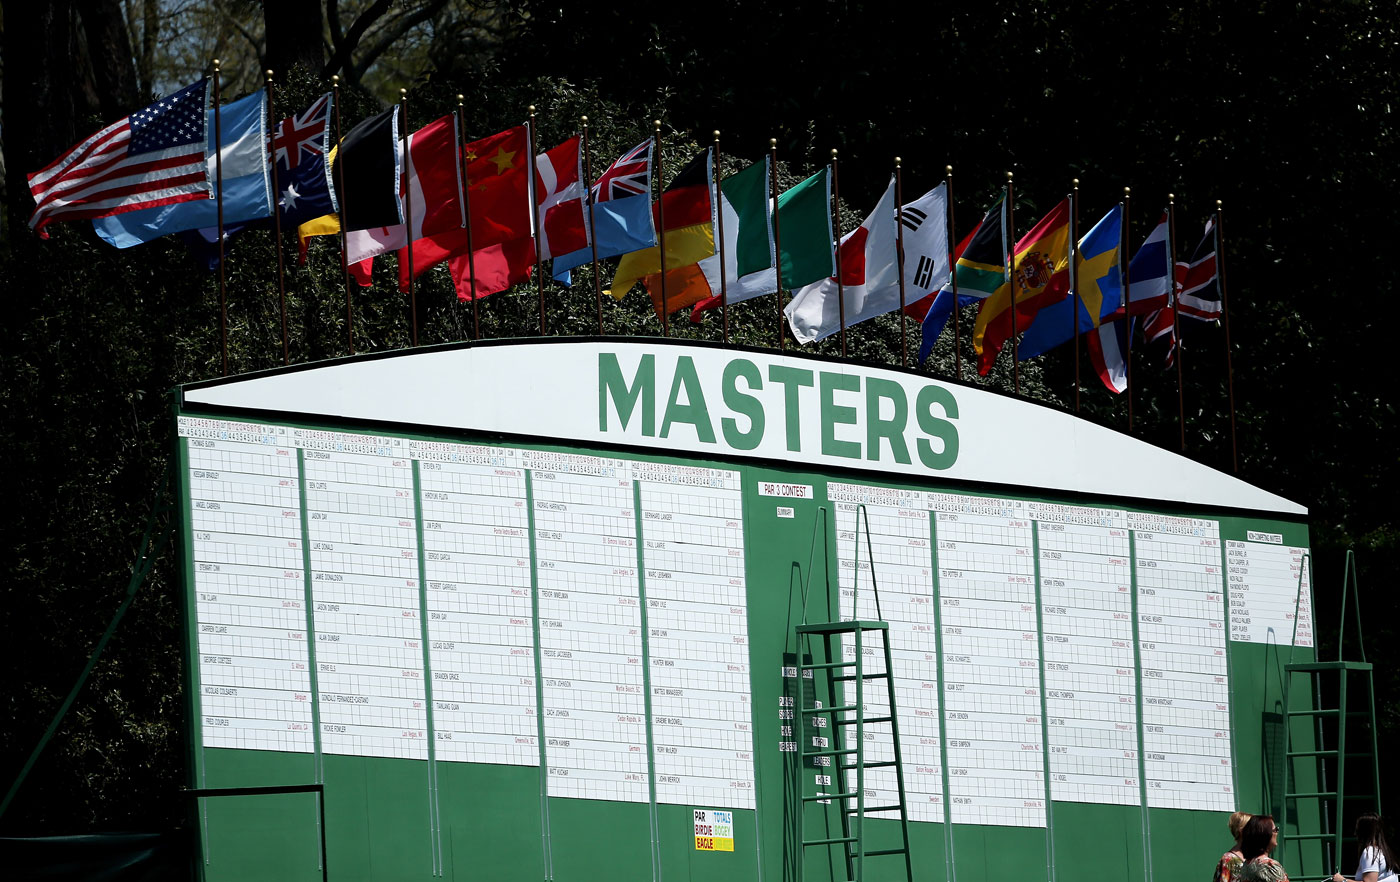 This year's Masters field could feature more than 100 players.